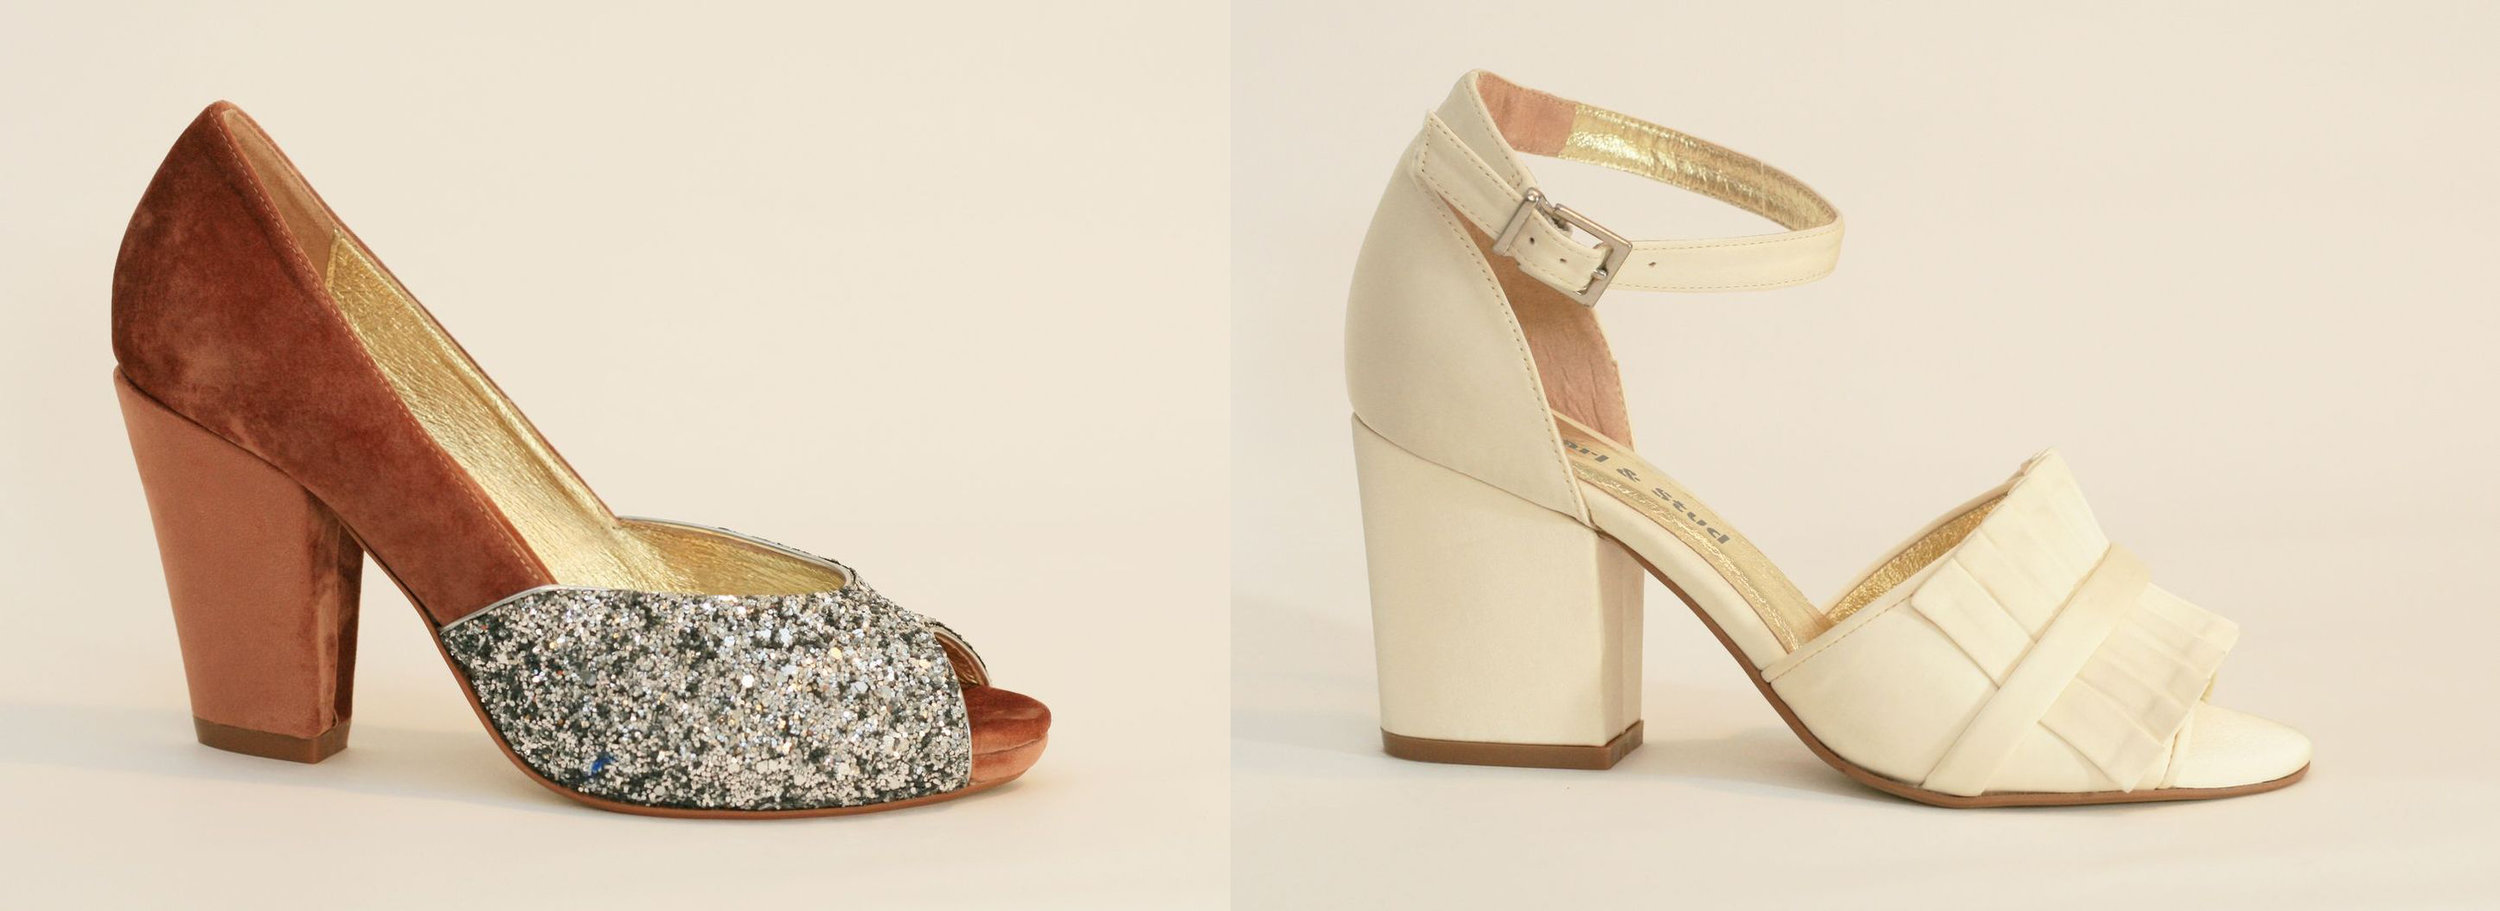 Pearl and Stud - Soto soft blush and Chelsea ivory satin